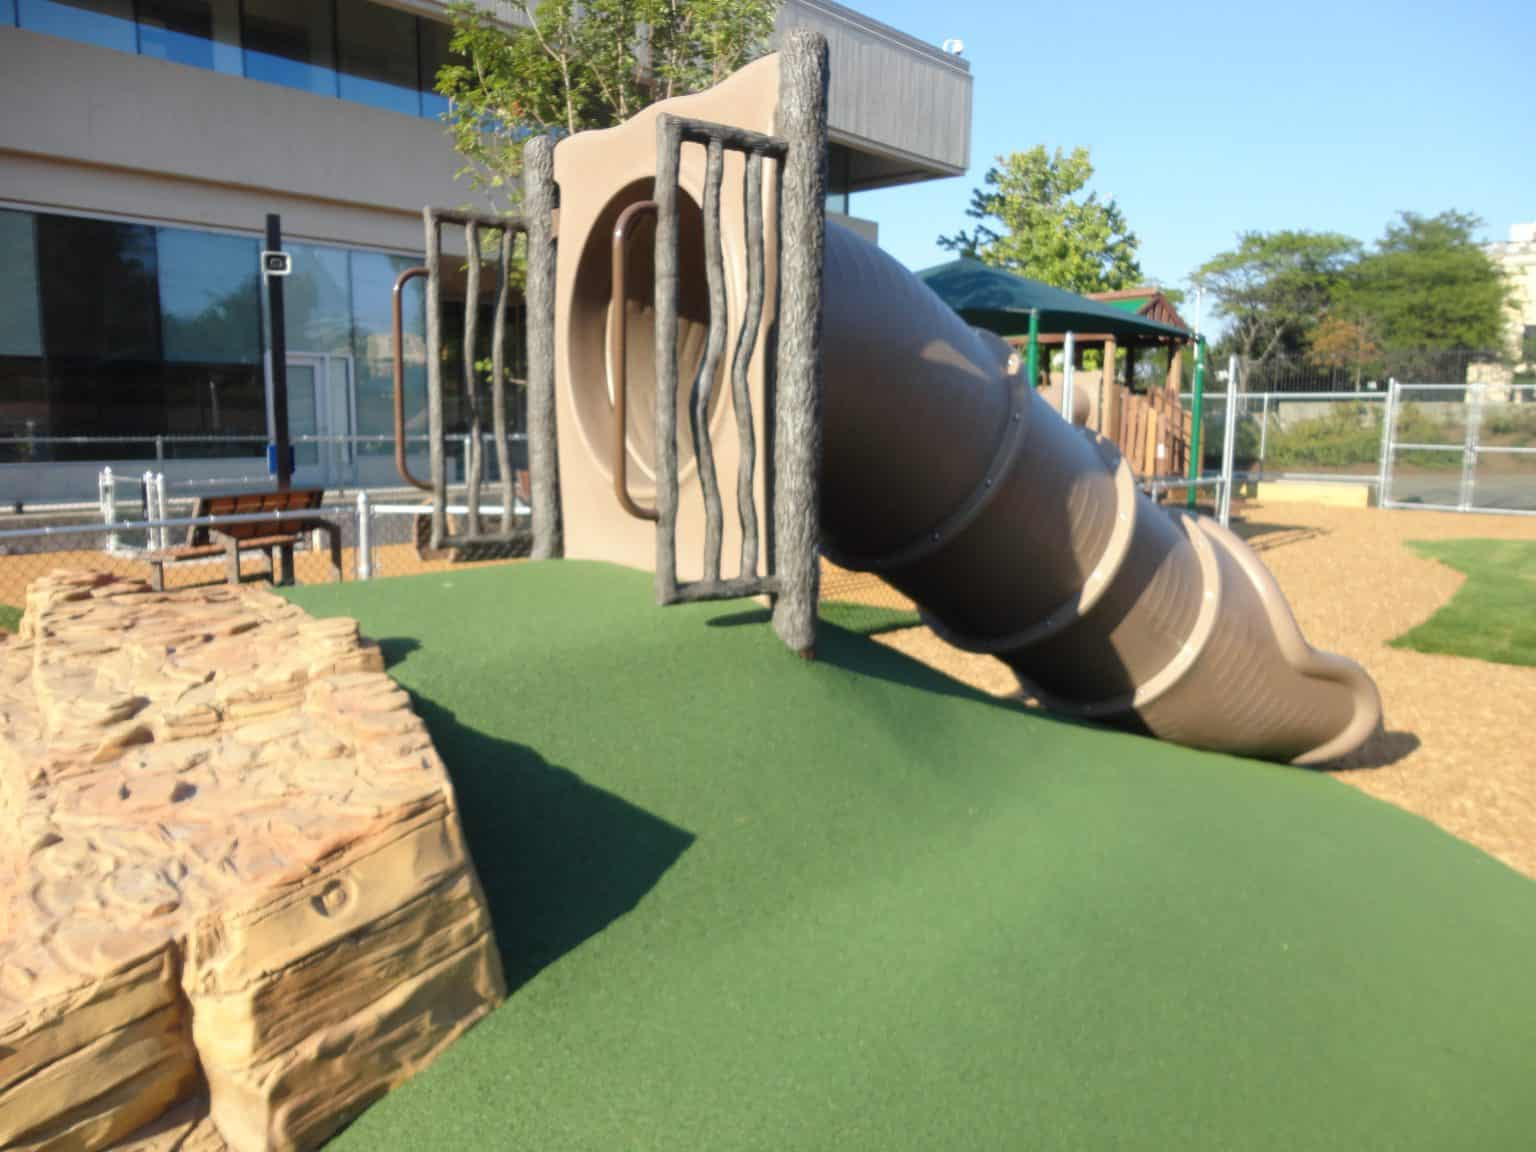 phyllis-bodel-daycare-playground-new-haven-ct_17507020343_o-1536x1152